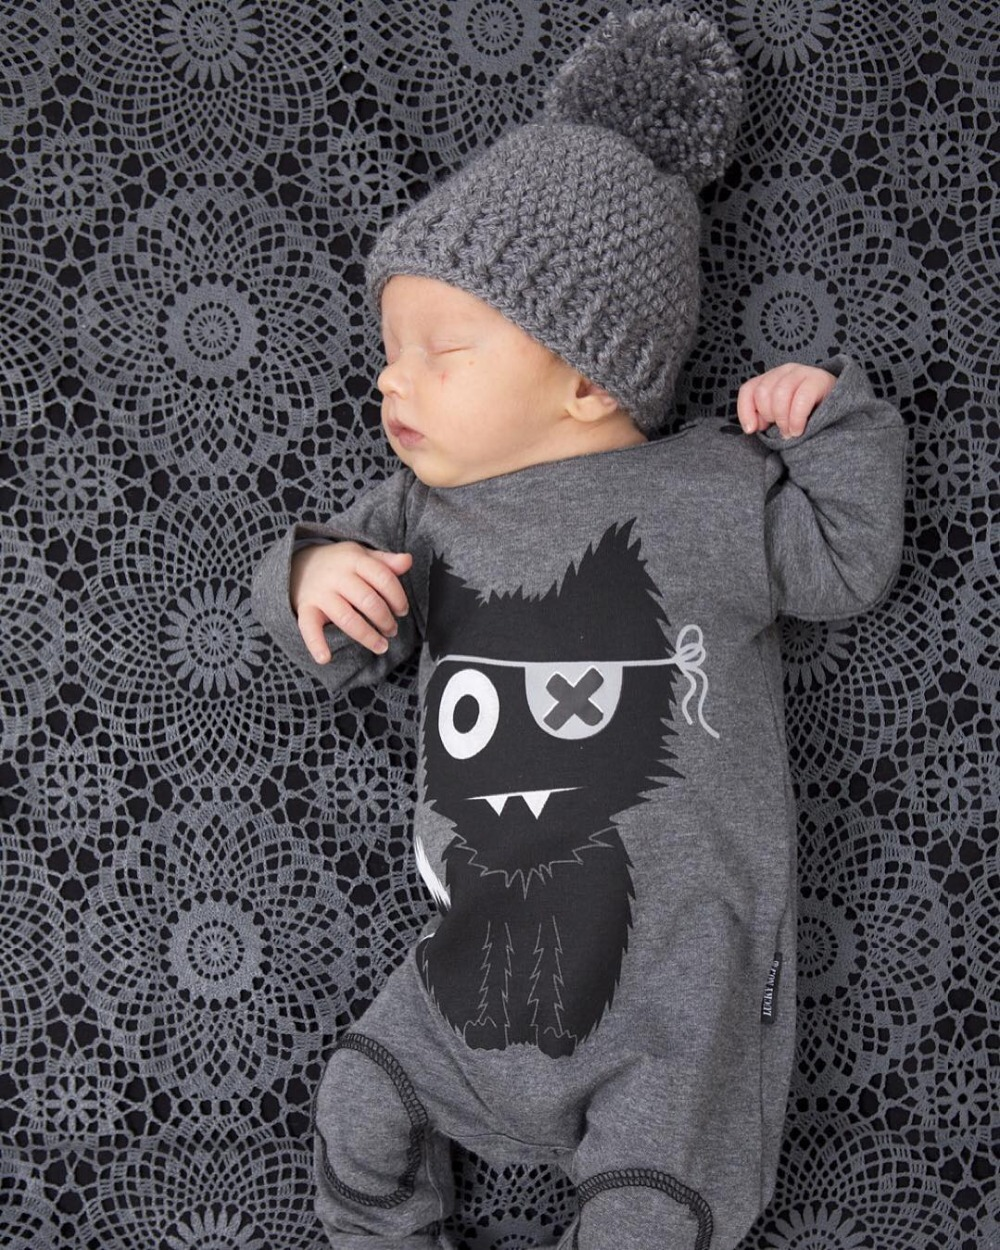 2016 fashion baby boy clothes long sleeve baby rompers newborn cotton baby girl clothing jumpsuit infant clothing roupas de bebe penguin fleece body bebe baby rompers long sleeve roupas infantil newborn baby girl romper clothes infant clothing size 6m